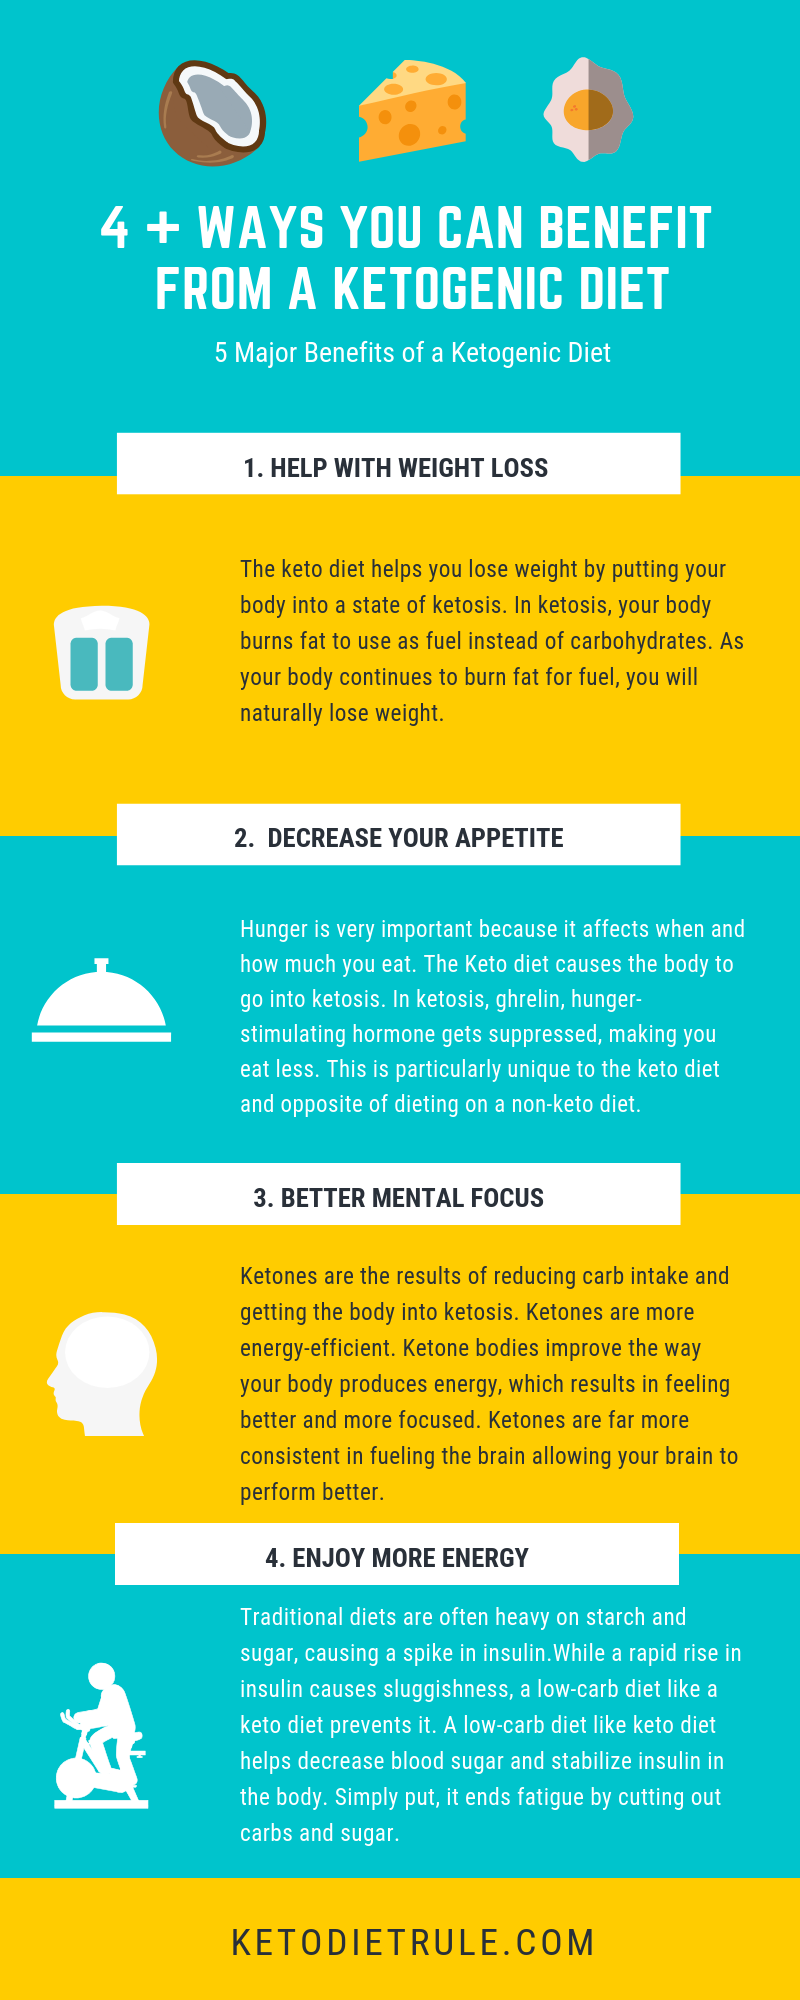 Ways you can benefit from a ketogenic diet